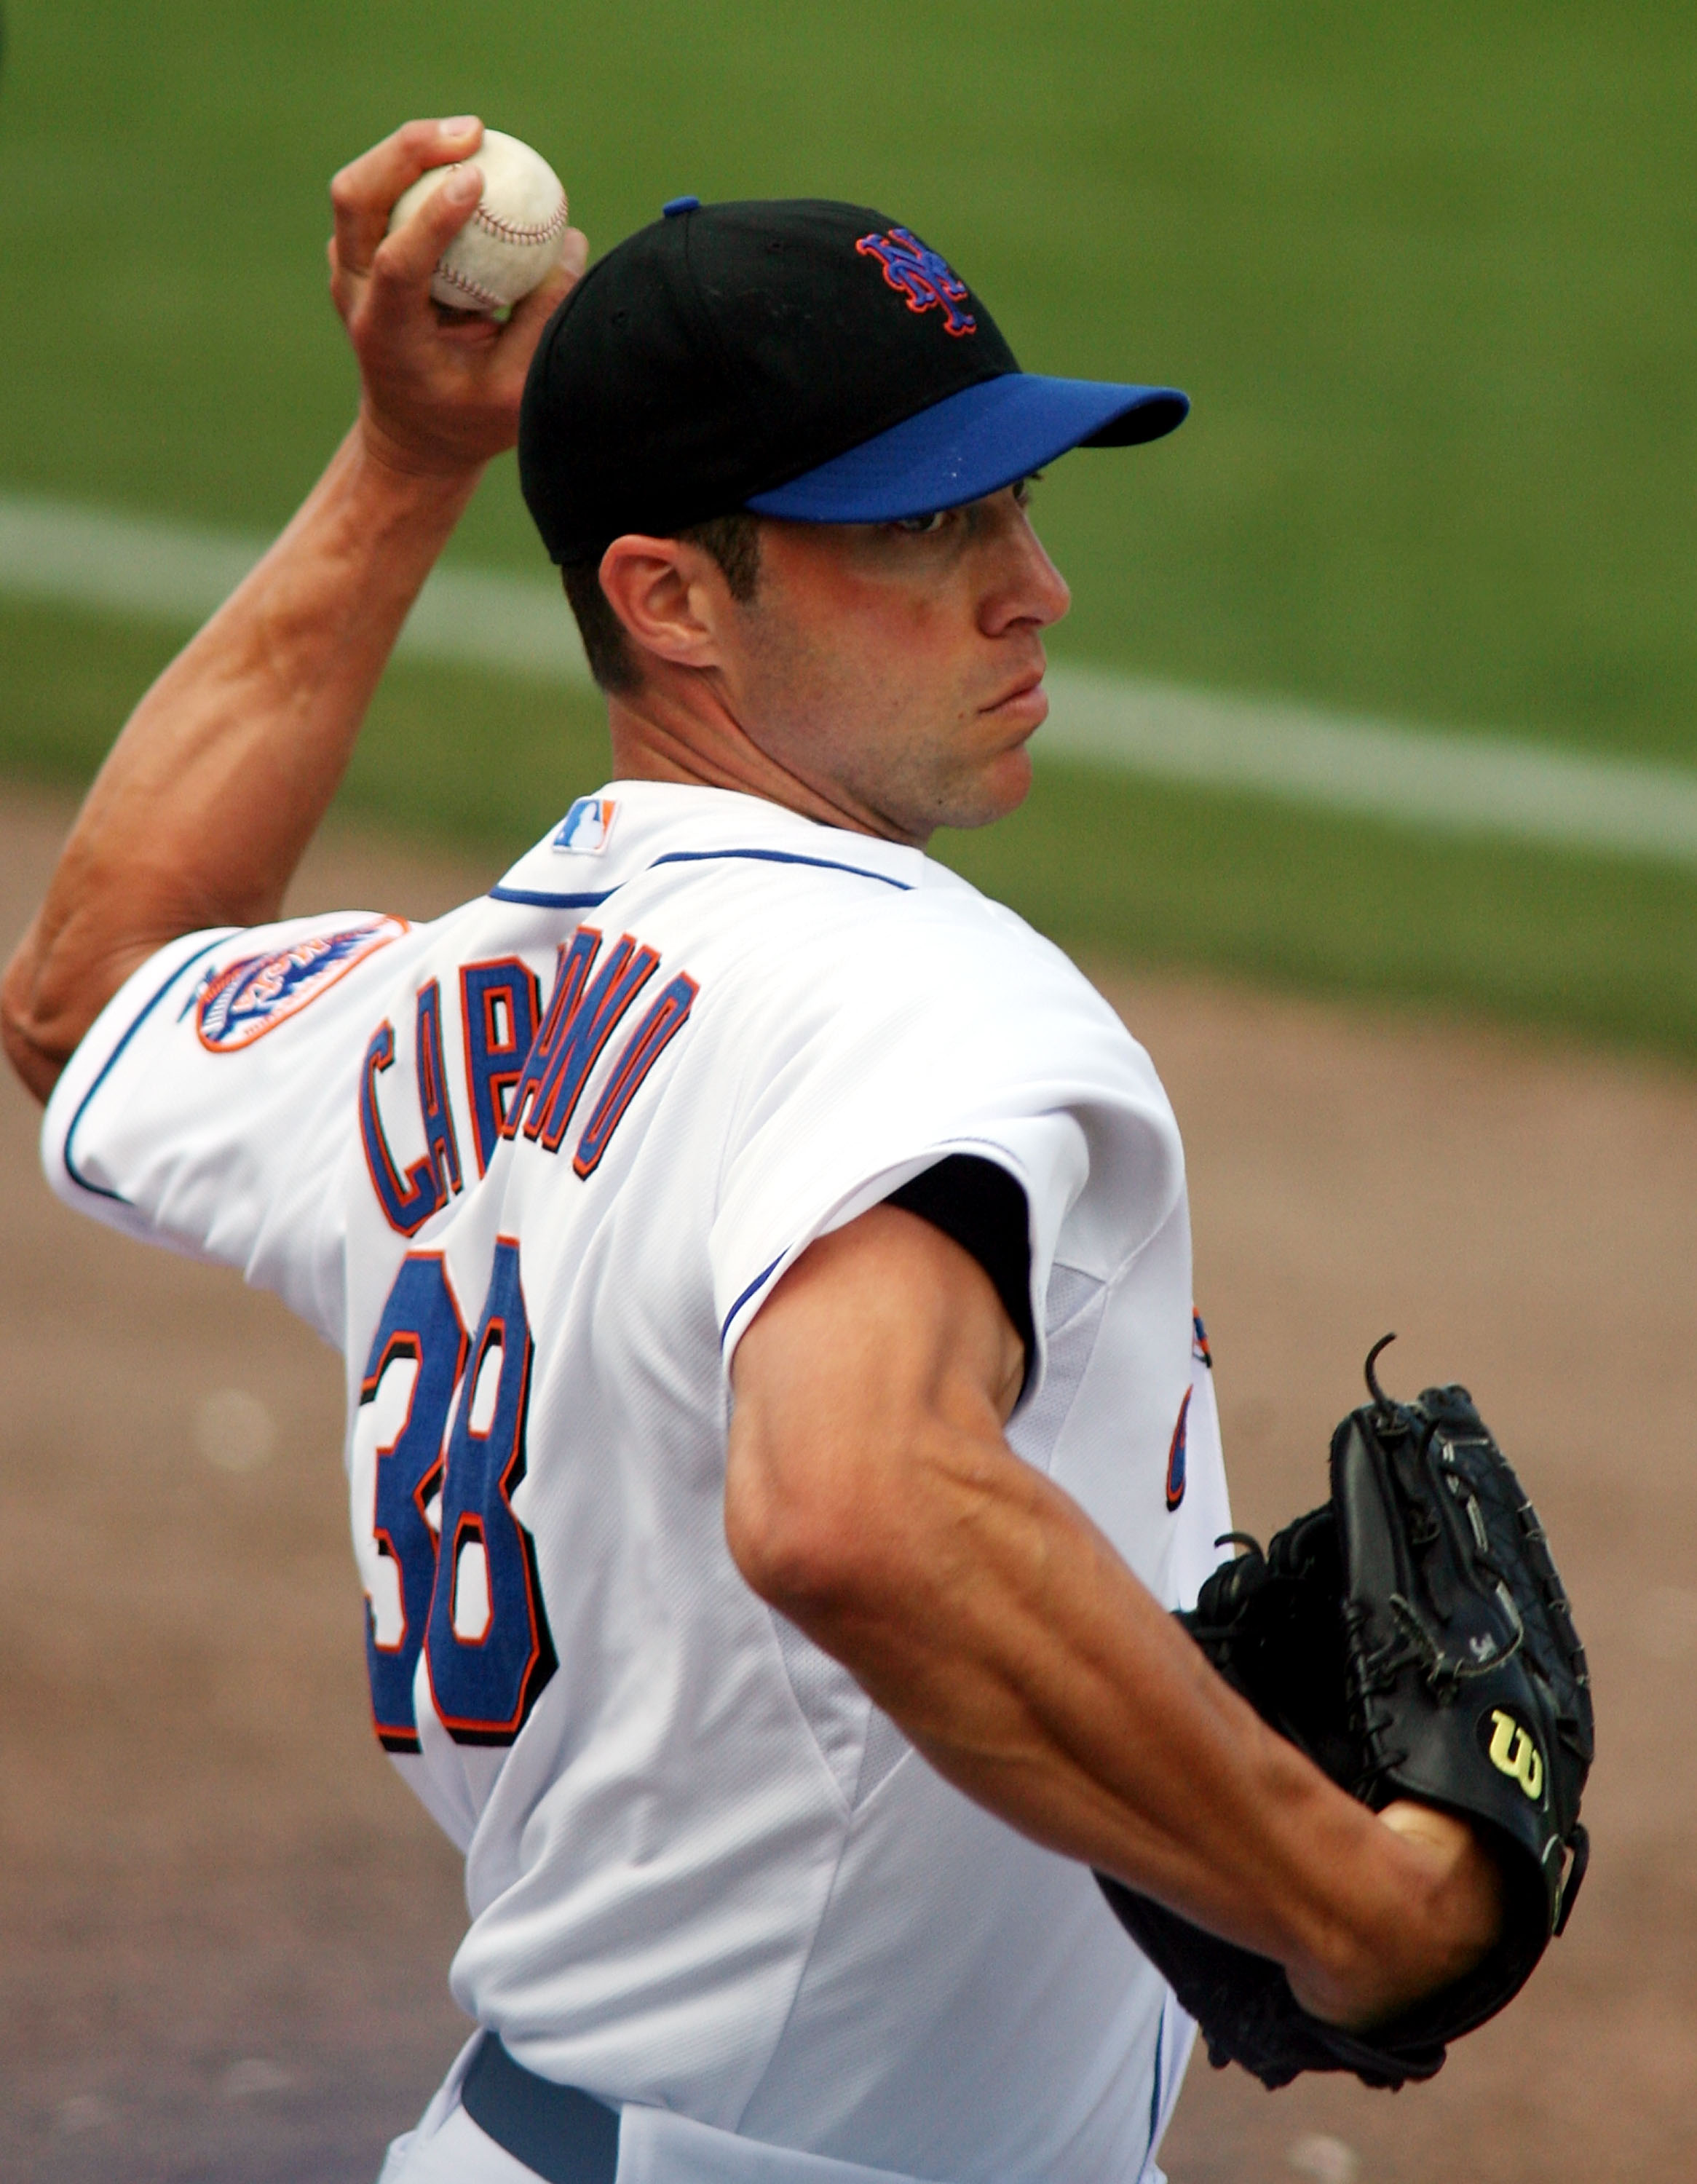 Chris Capuano is out to show that he is healthy and can once again be effective in 2011.